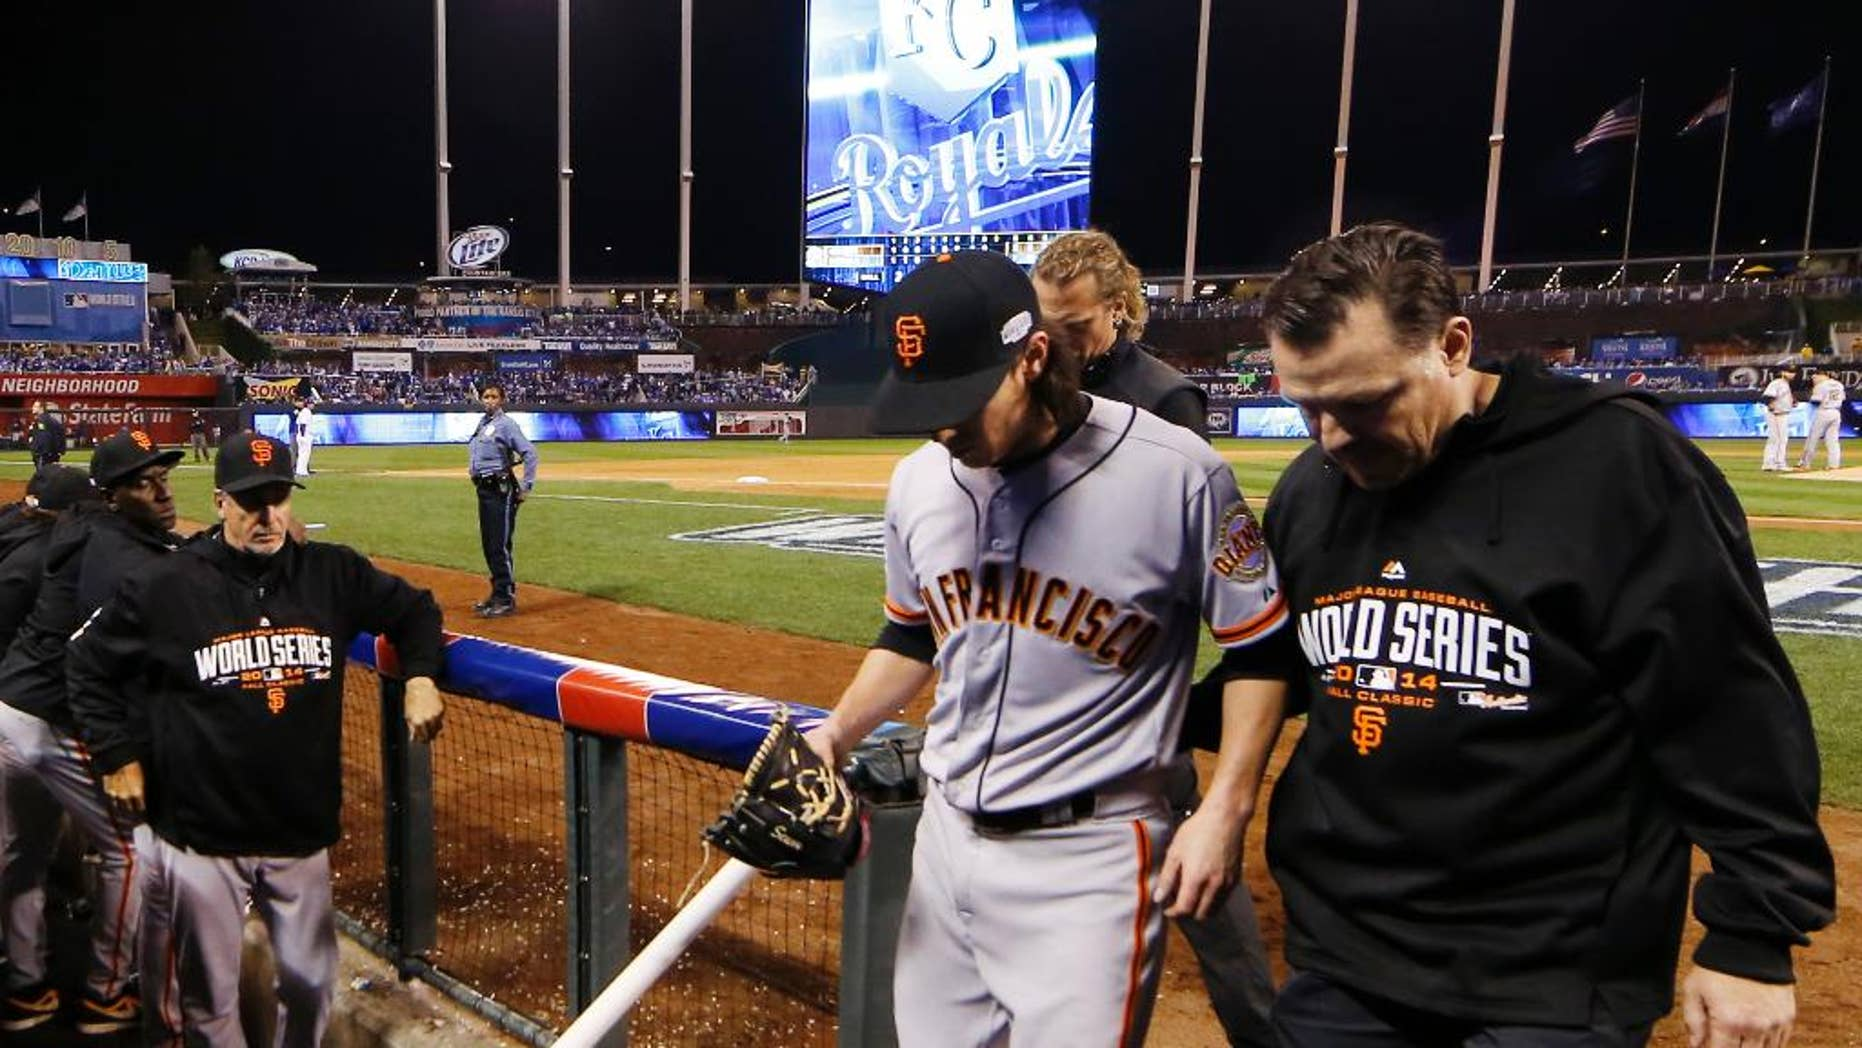 San Francisco Giants pitcher Tim Lincecum is helped into the team's dugout during the eighth inning of Game 2 of baseball's World Series Wednesday, Oct. 22, 2014, in Kansas City, Mo. Kansas City Royals defeated the Giants 7-2 to tie the series at 1-1 games. (AP Photo/Matt Slocum)